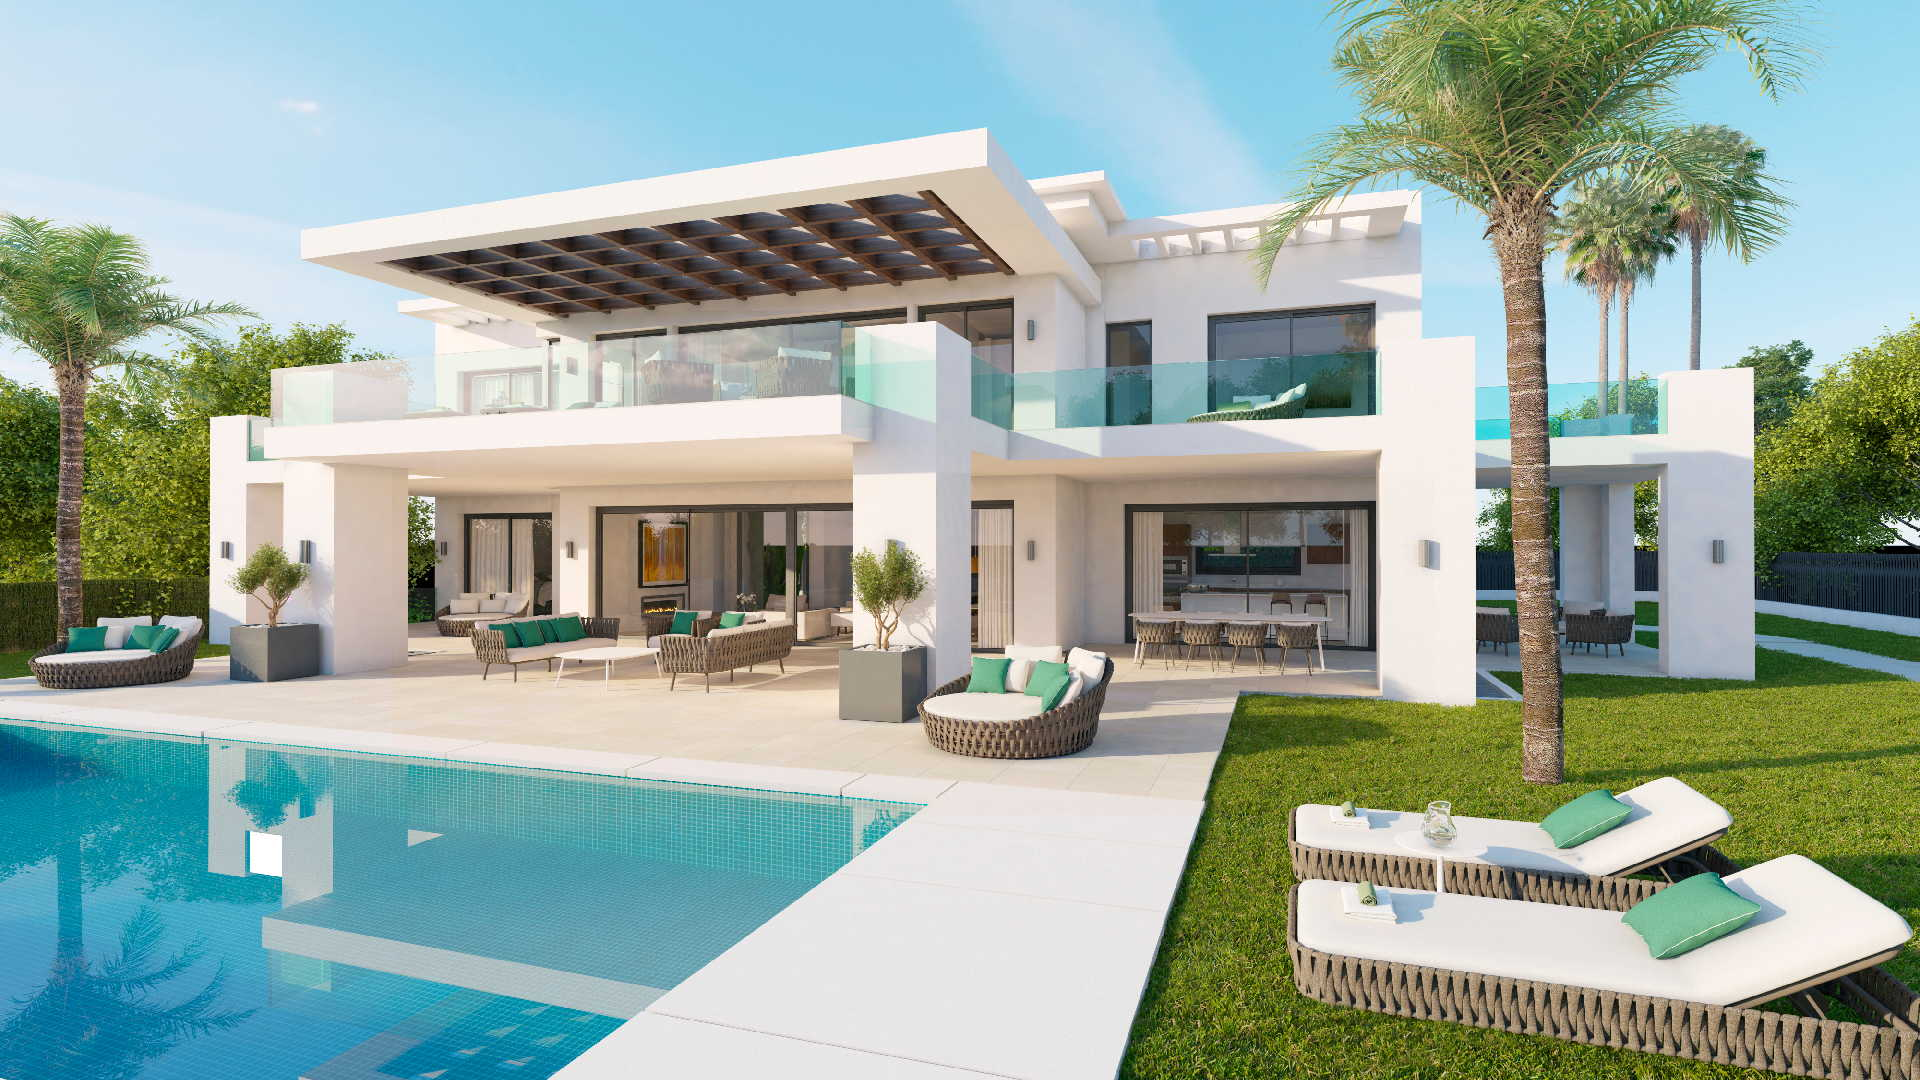 Los olivos is a brand new development of modern villas located in the hills of the highly demanded nueva andalucía residential area in marbella